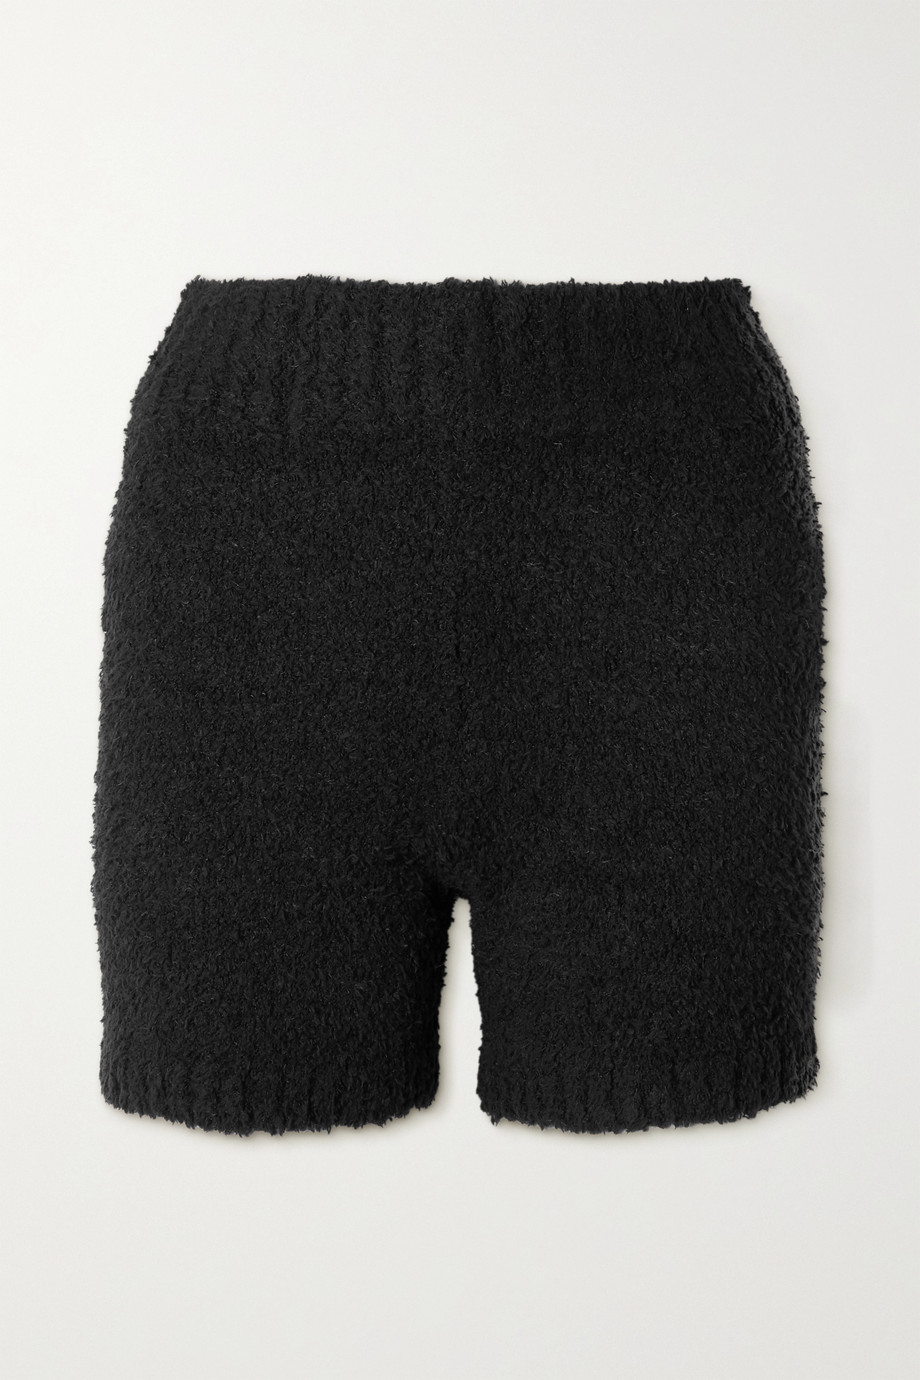 SKIMS Cozy Knit bouclé shorts